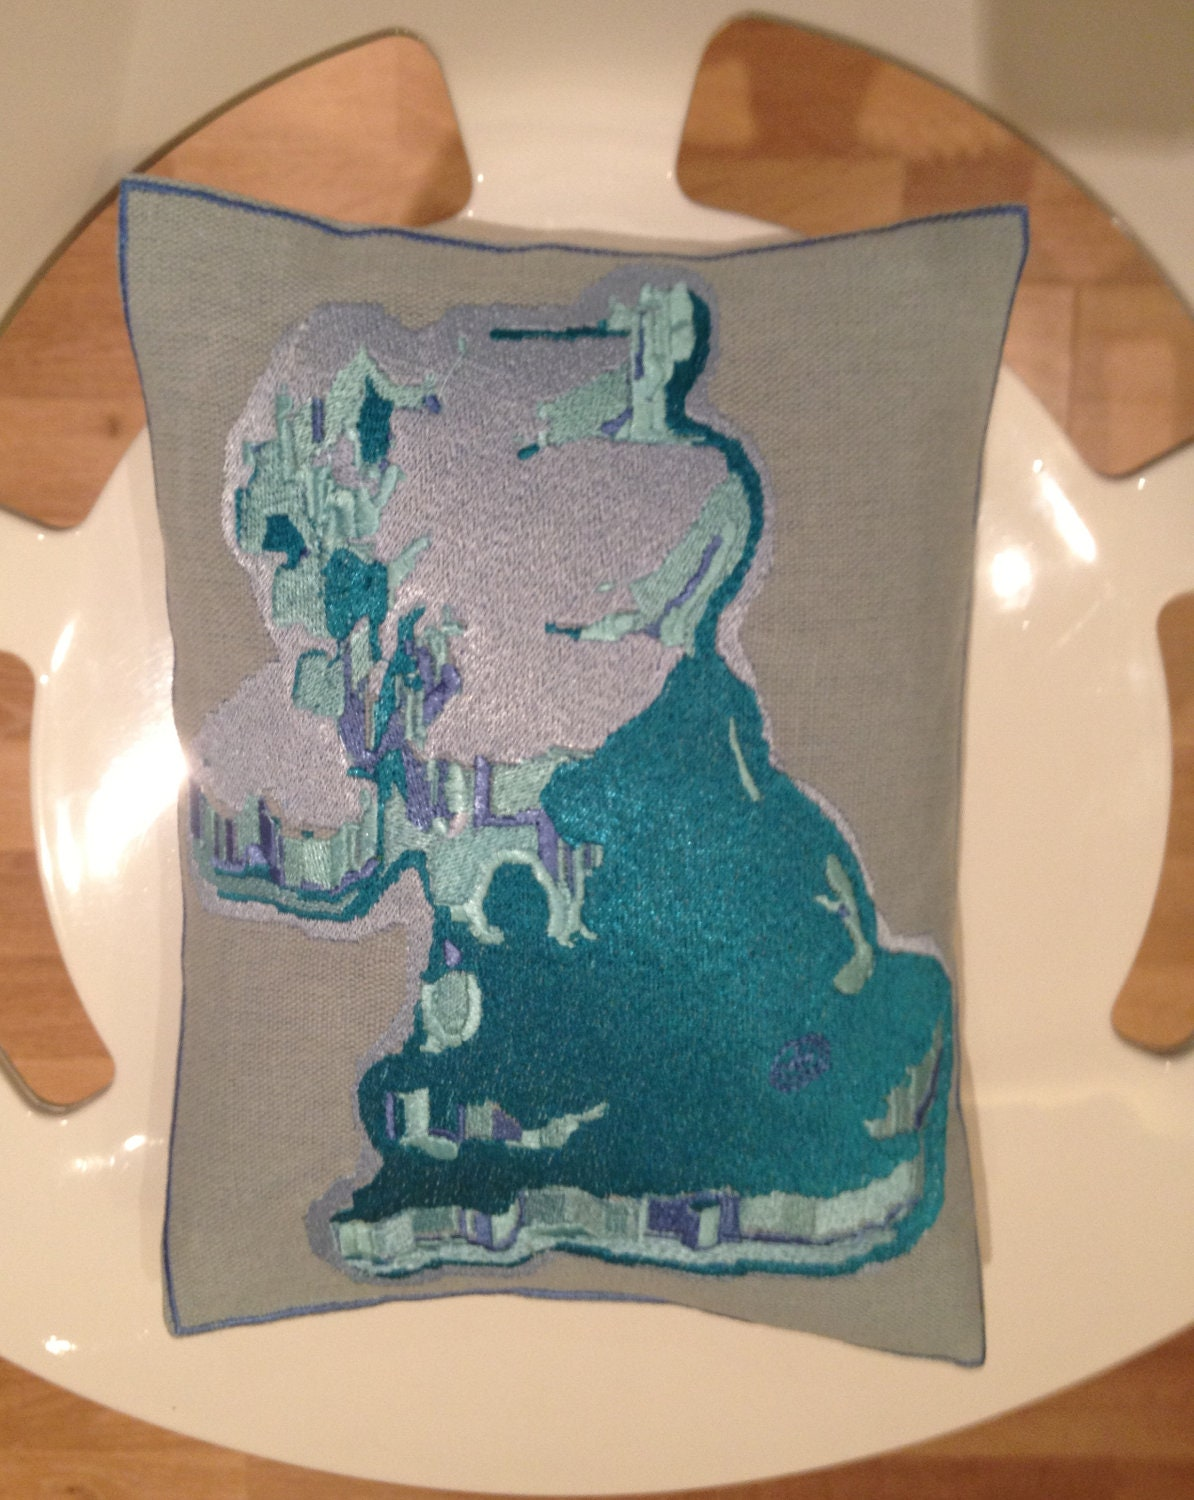 United Kingdom, Uk Abstract Embroidery Teal Throw Pillow